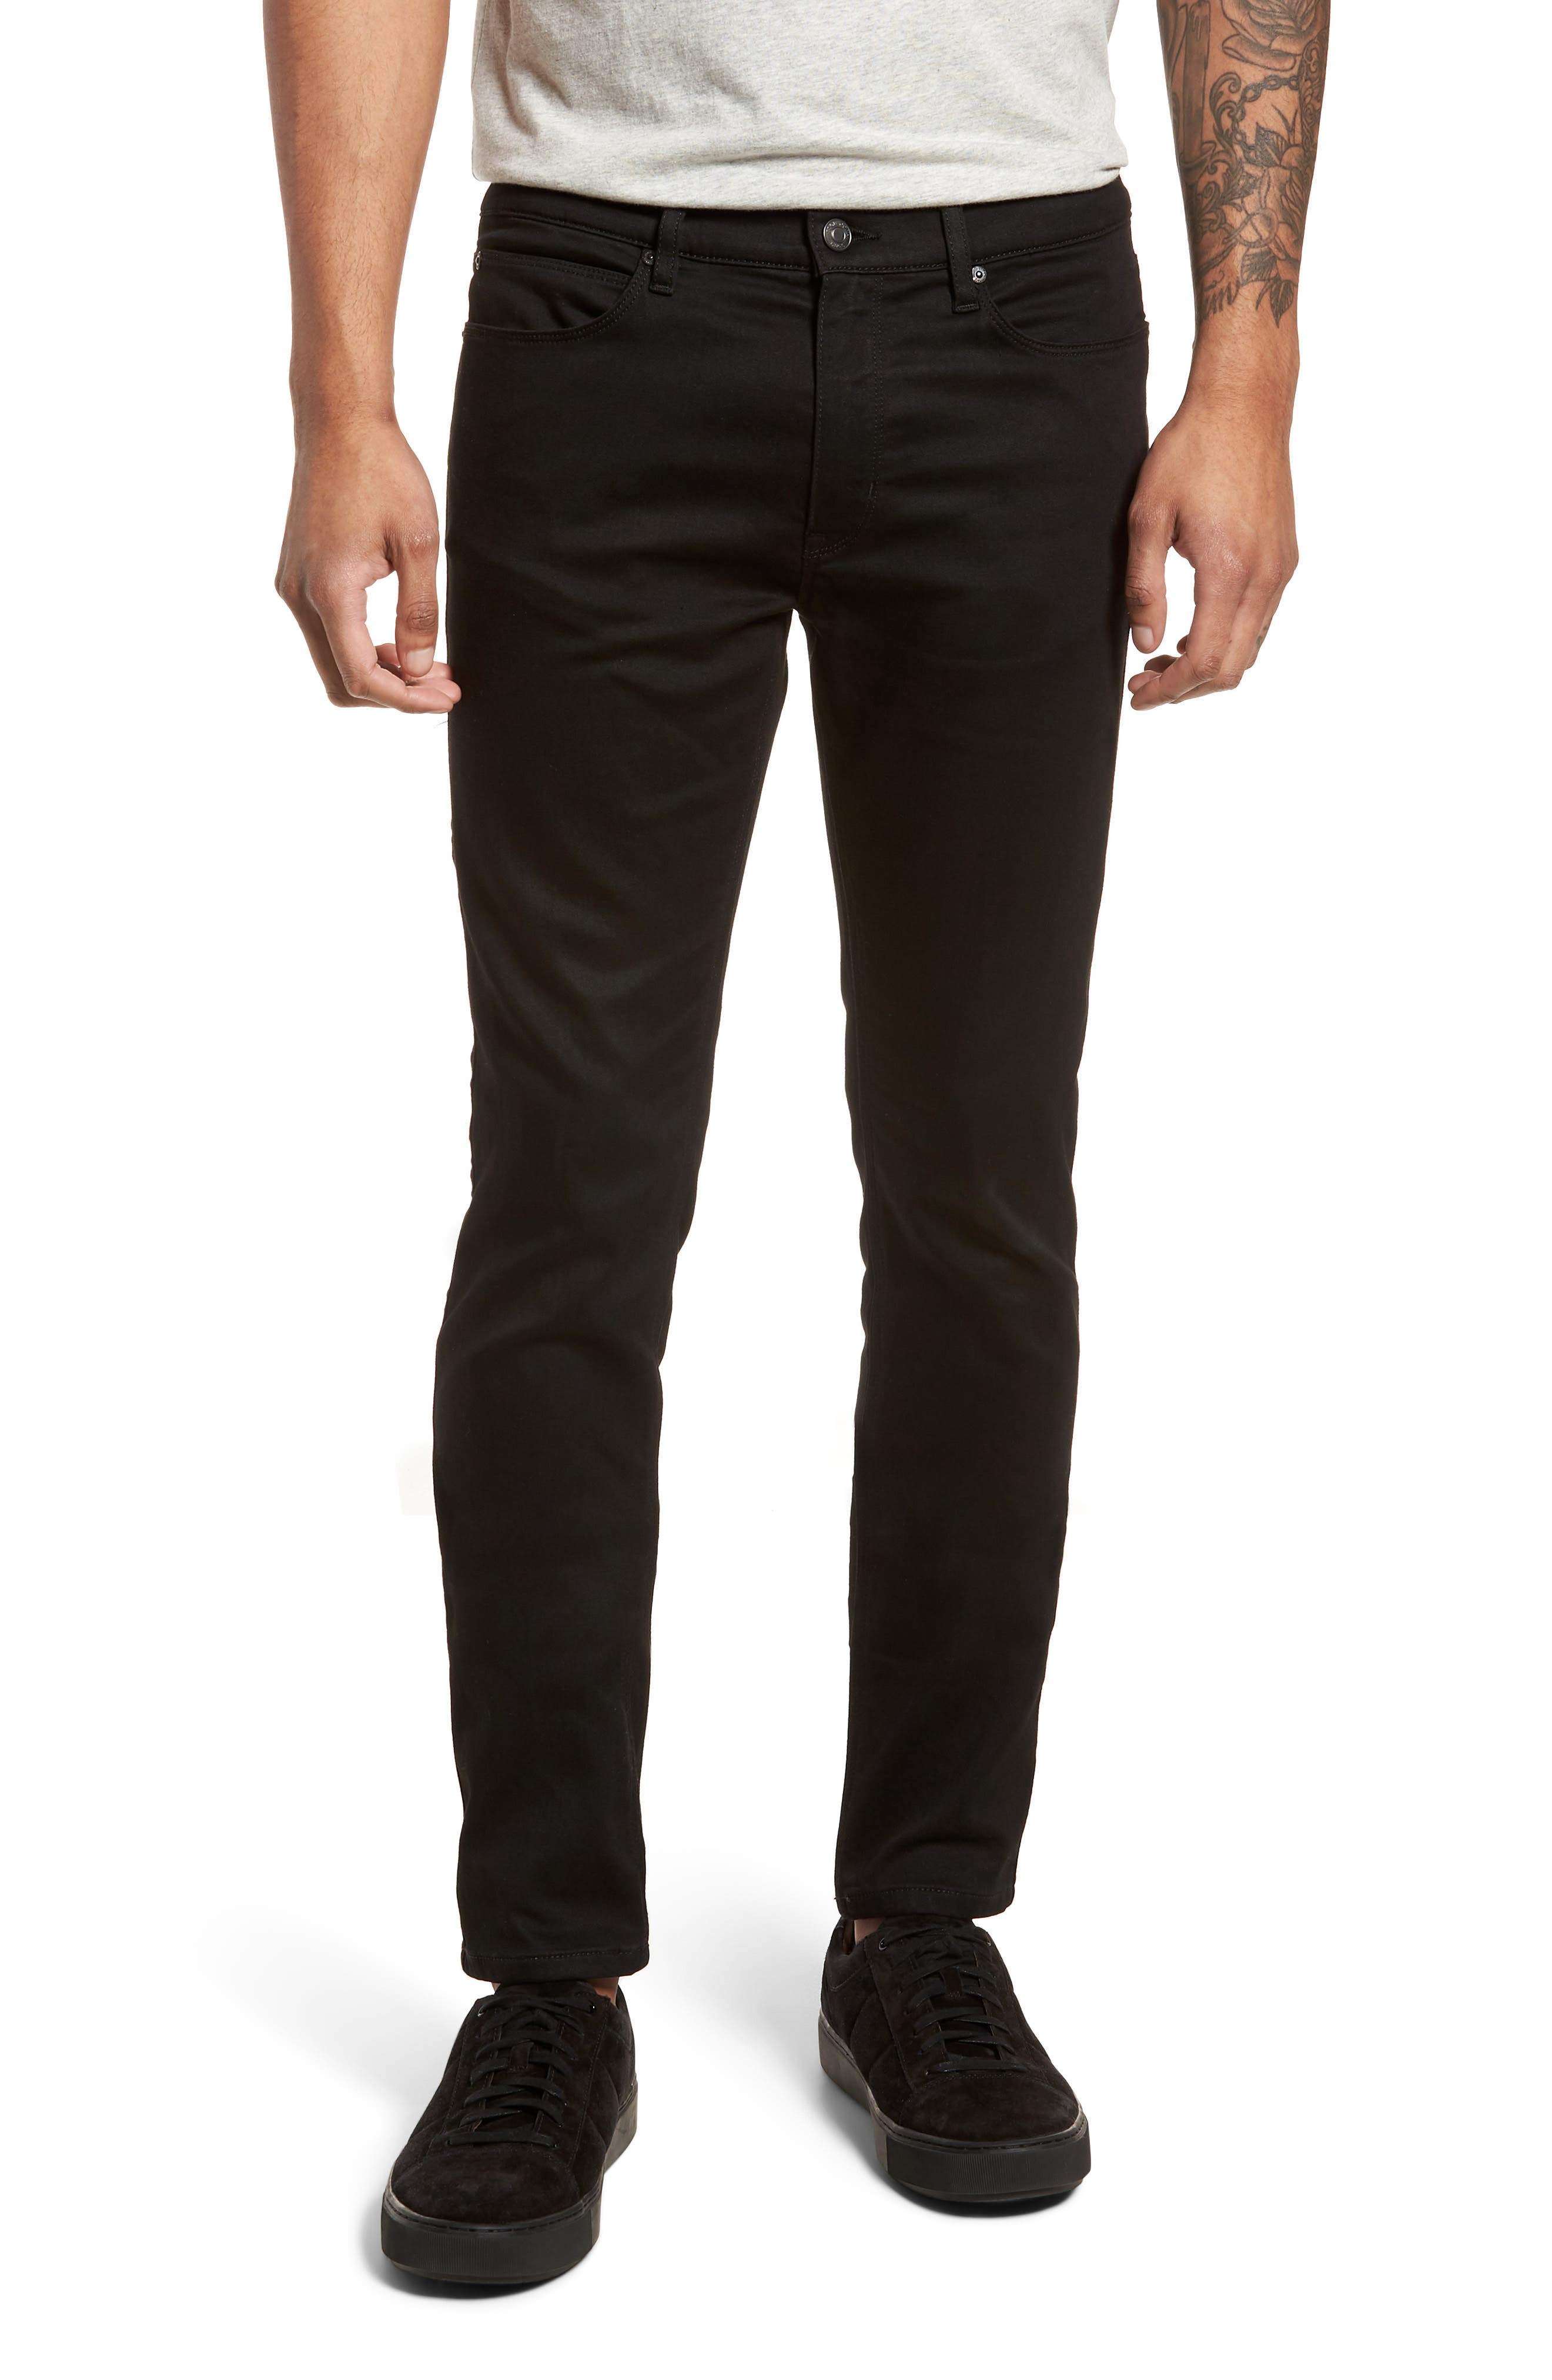 734 Skinny Fit Jeans,                             Main thumbnail 1, color,                             001